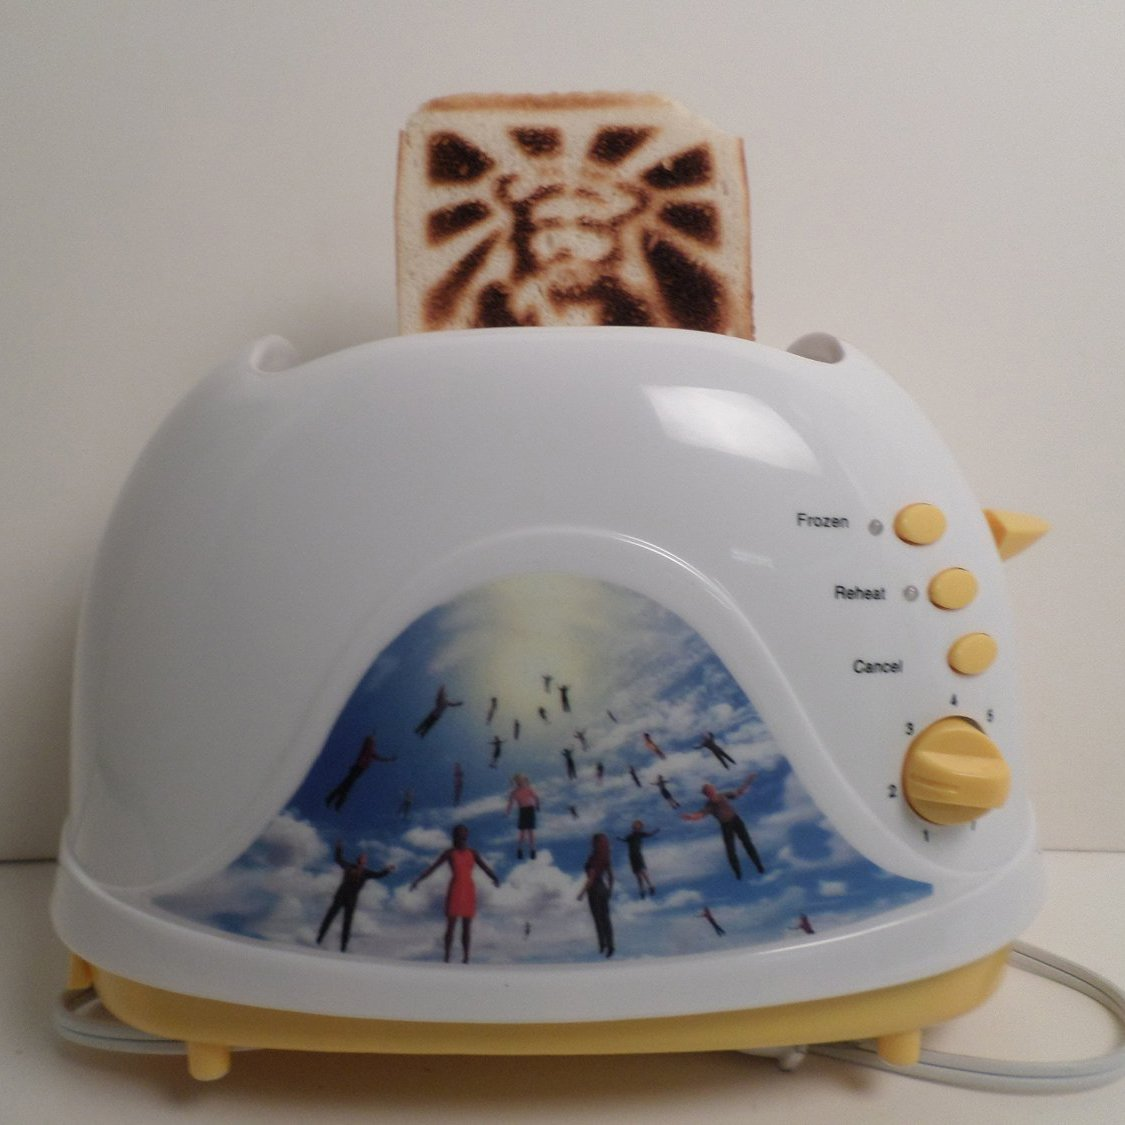 The Jesus Rapture Toaster